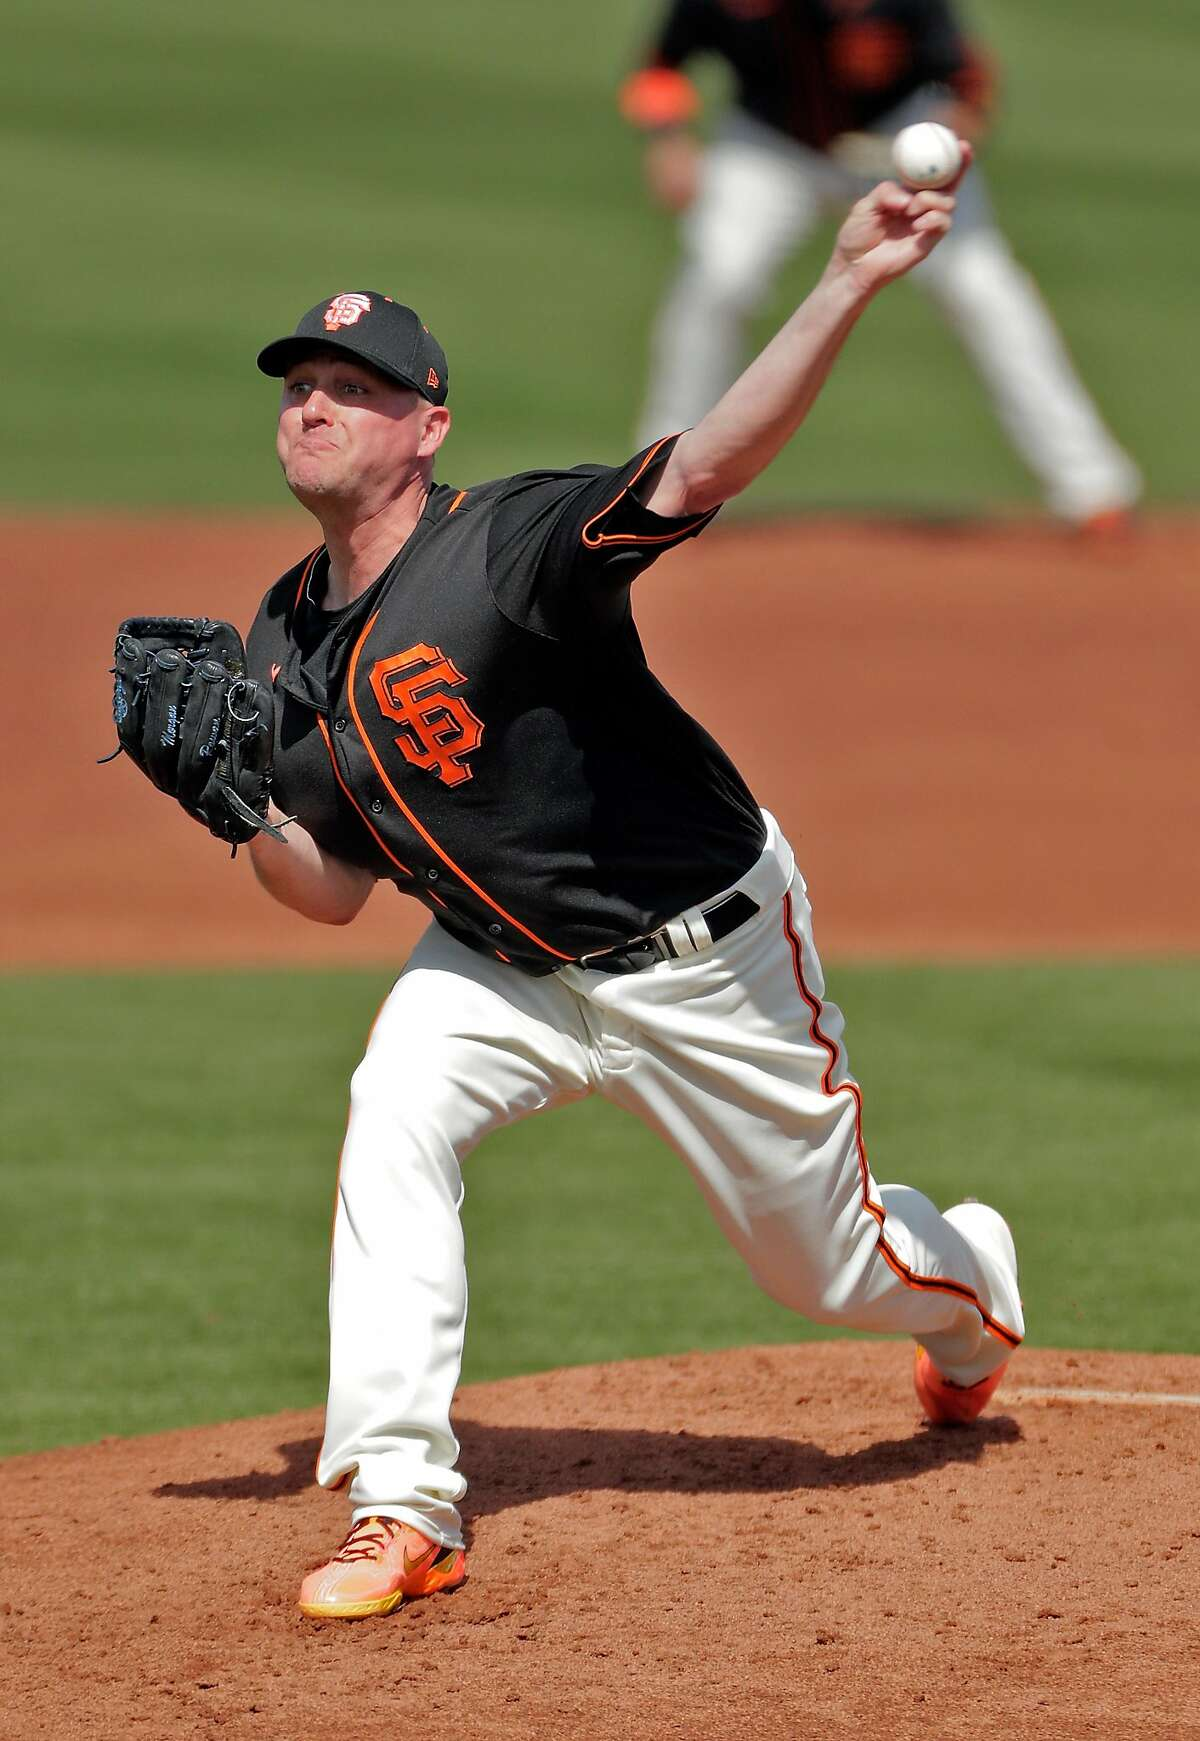 Jake McGee (17) pitches in the second inning as the San Francisco Giants played the Chicago White Sox in a spring training game at Scottsdale Stadium in Scottsdale, Ariz., on Thursday, March 4, 2021.